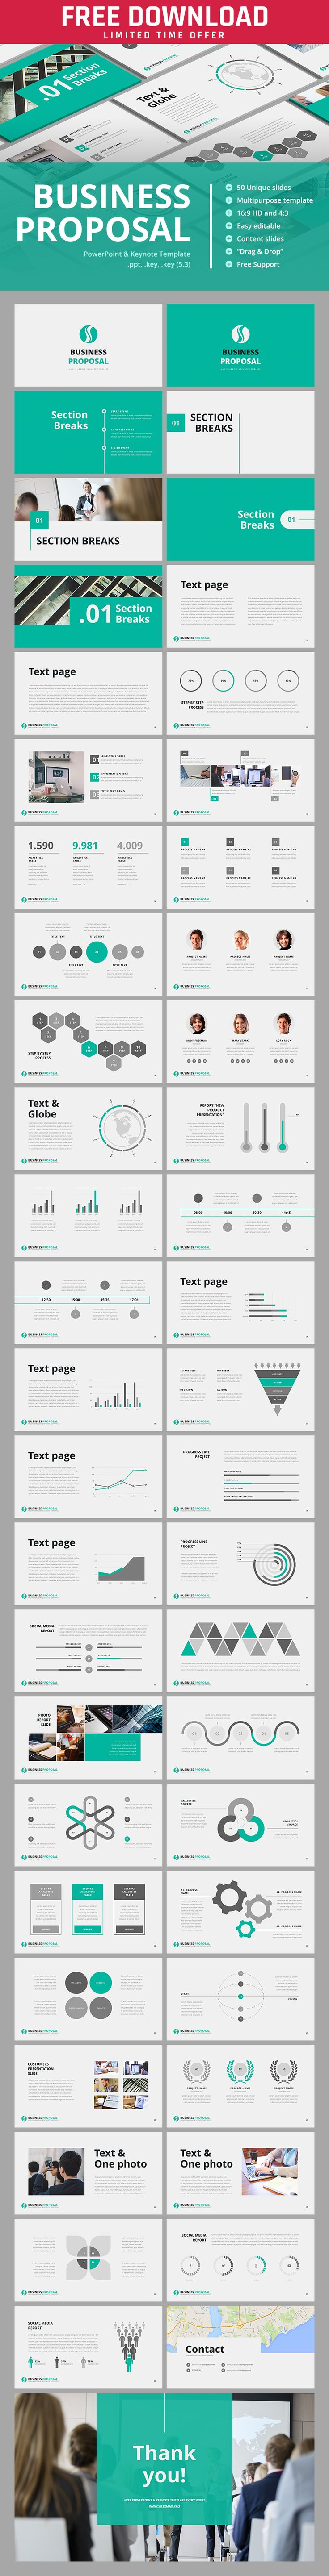 Make Them The Business Proposal They Will Never Refuse. More Keynote  Templates U003e  Business Proposal Template Free Download